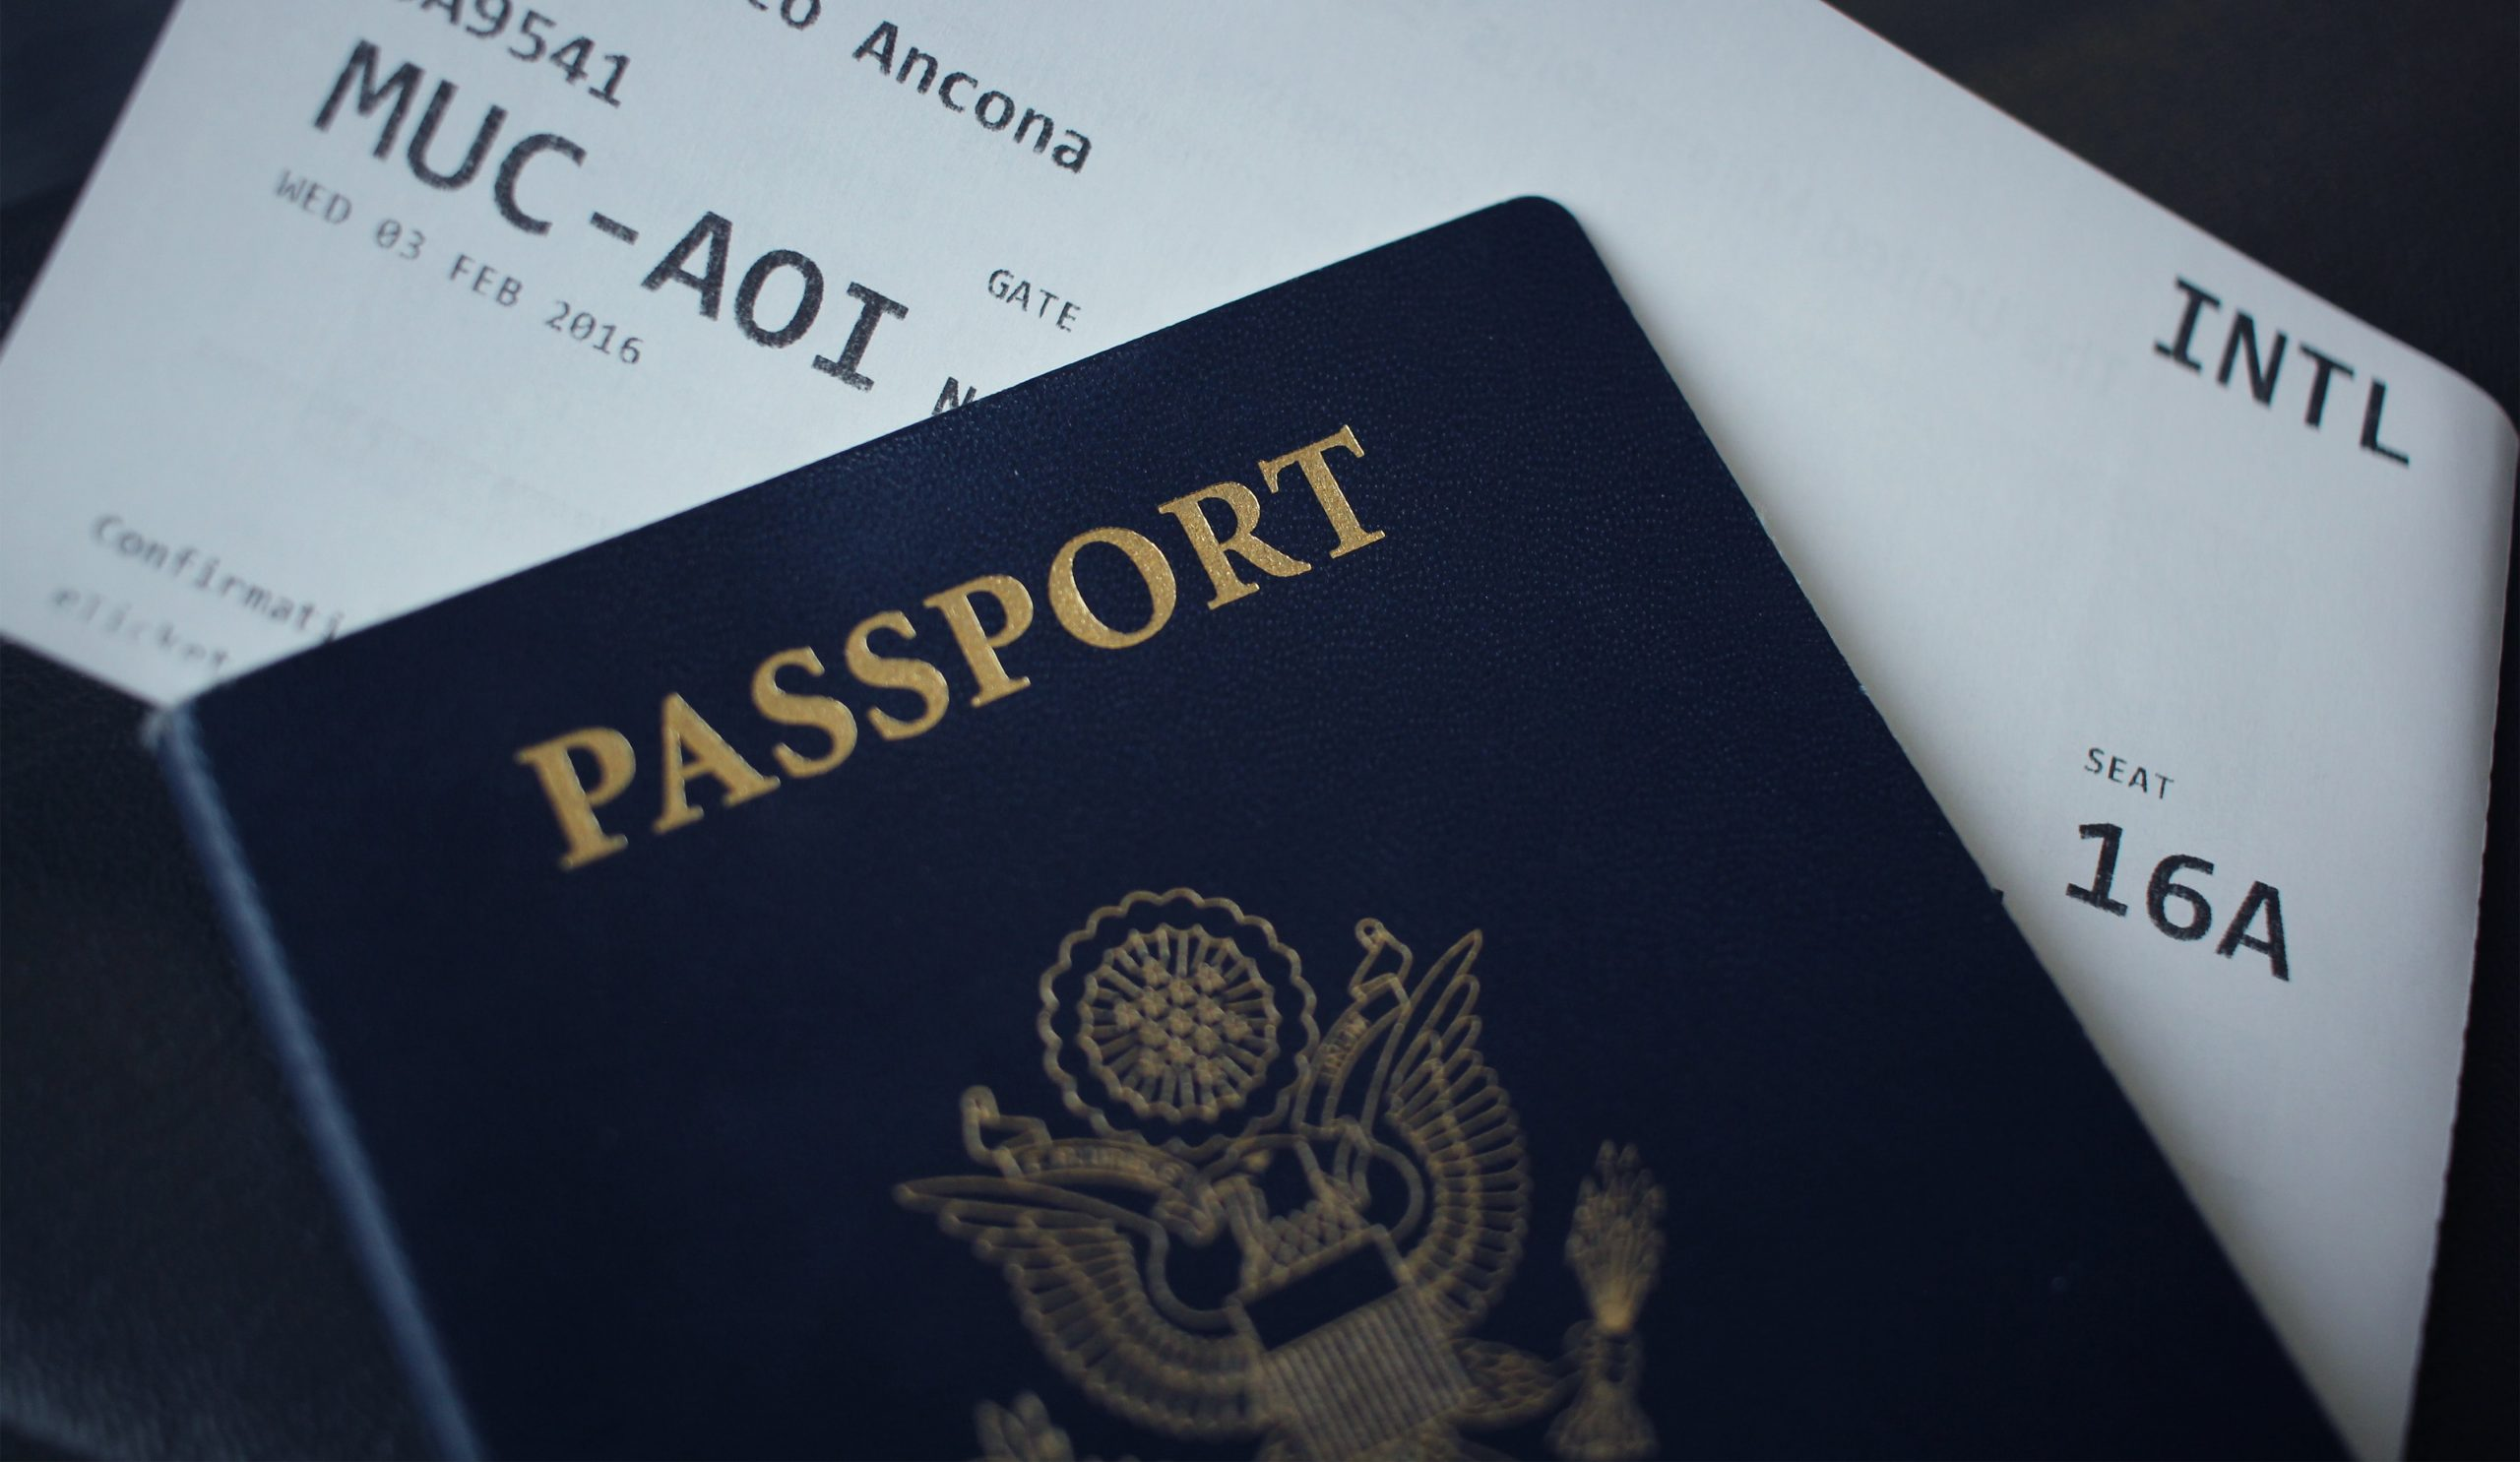 United States passport on top of boarding pass for plane